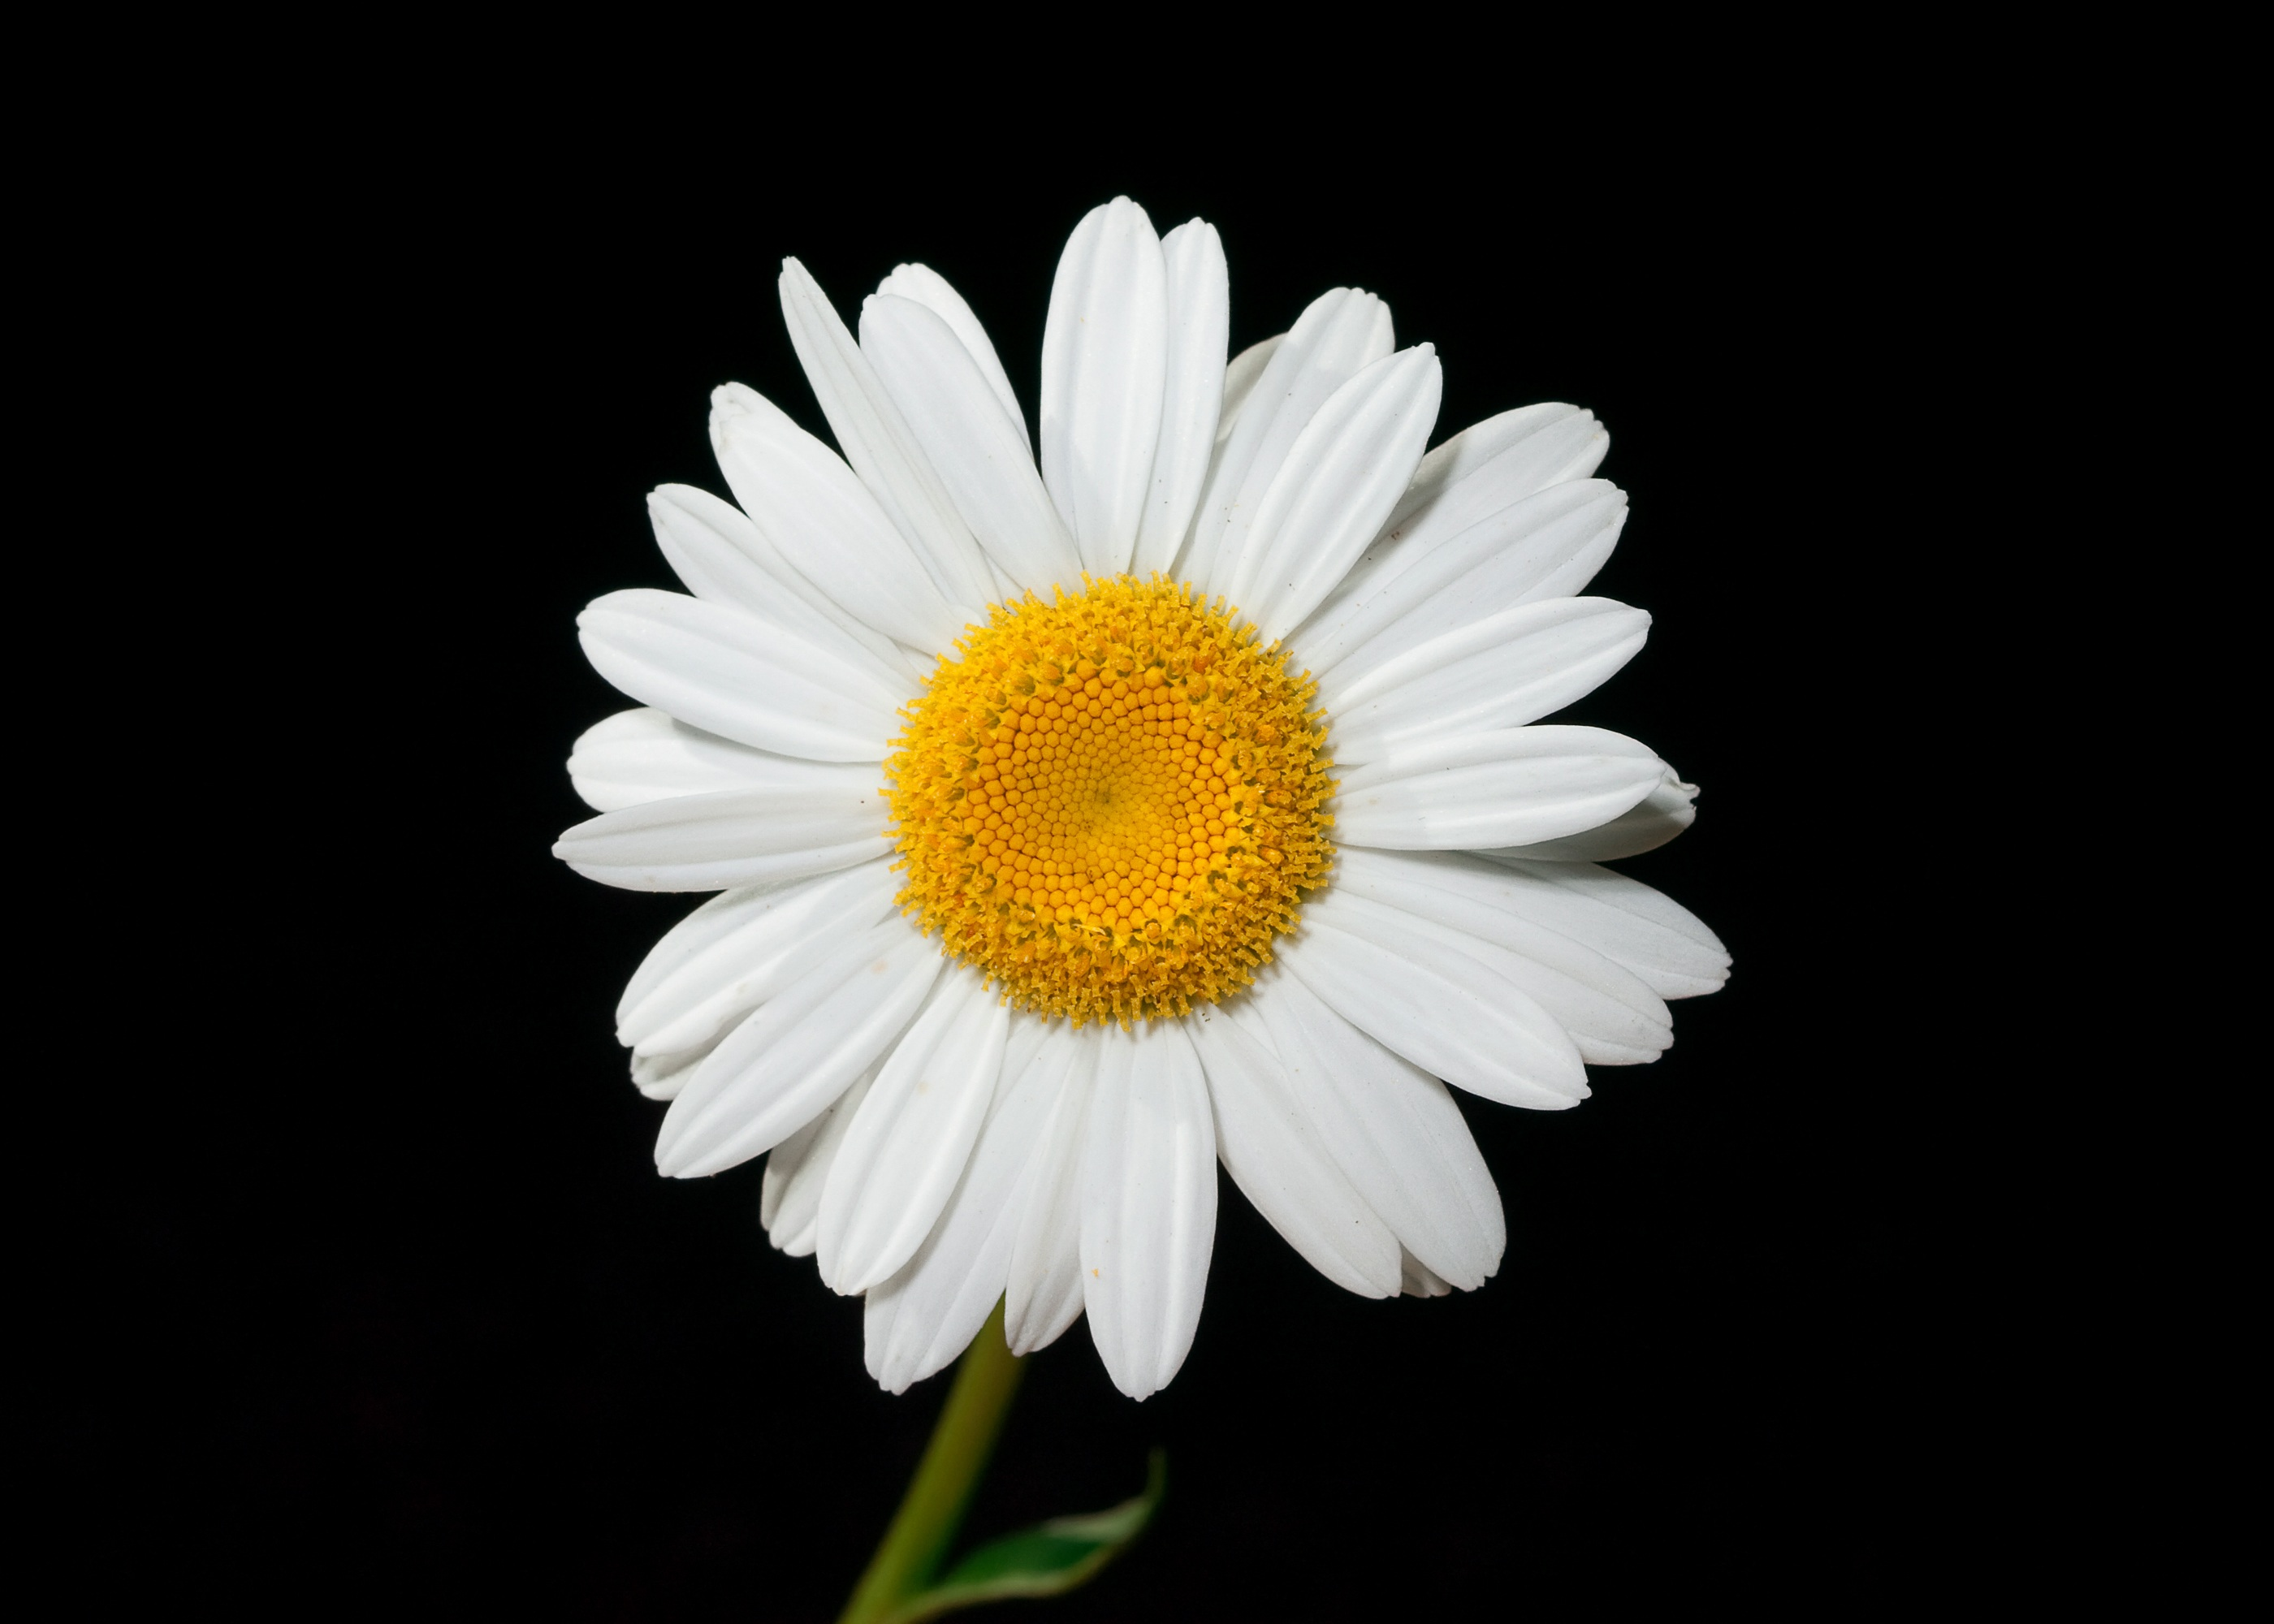 free stock photos of daisy · pexels, Beautiful flower